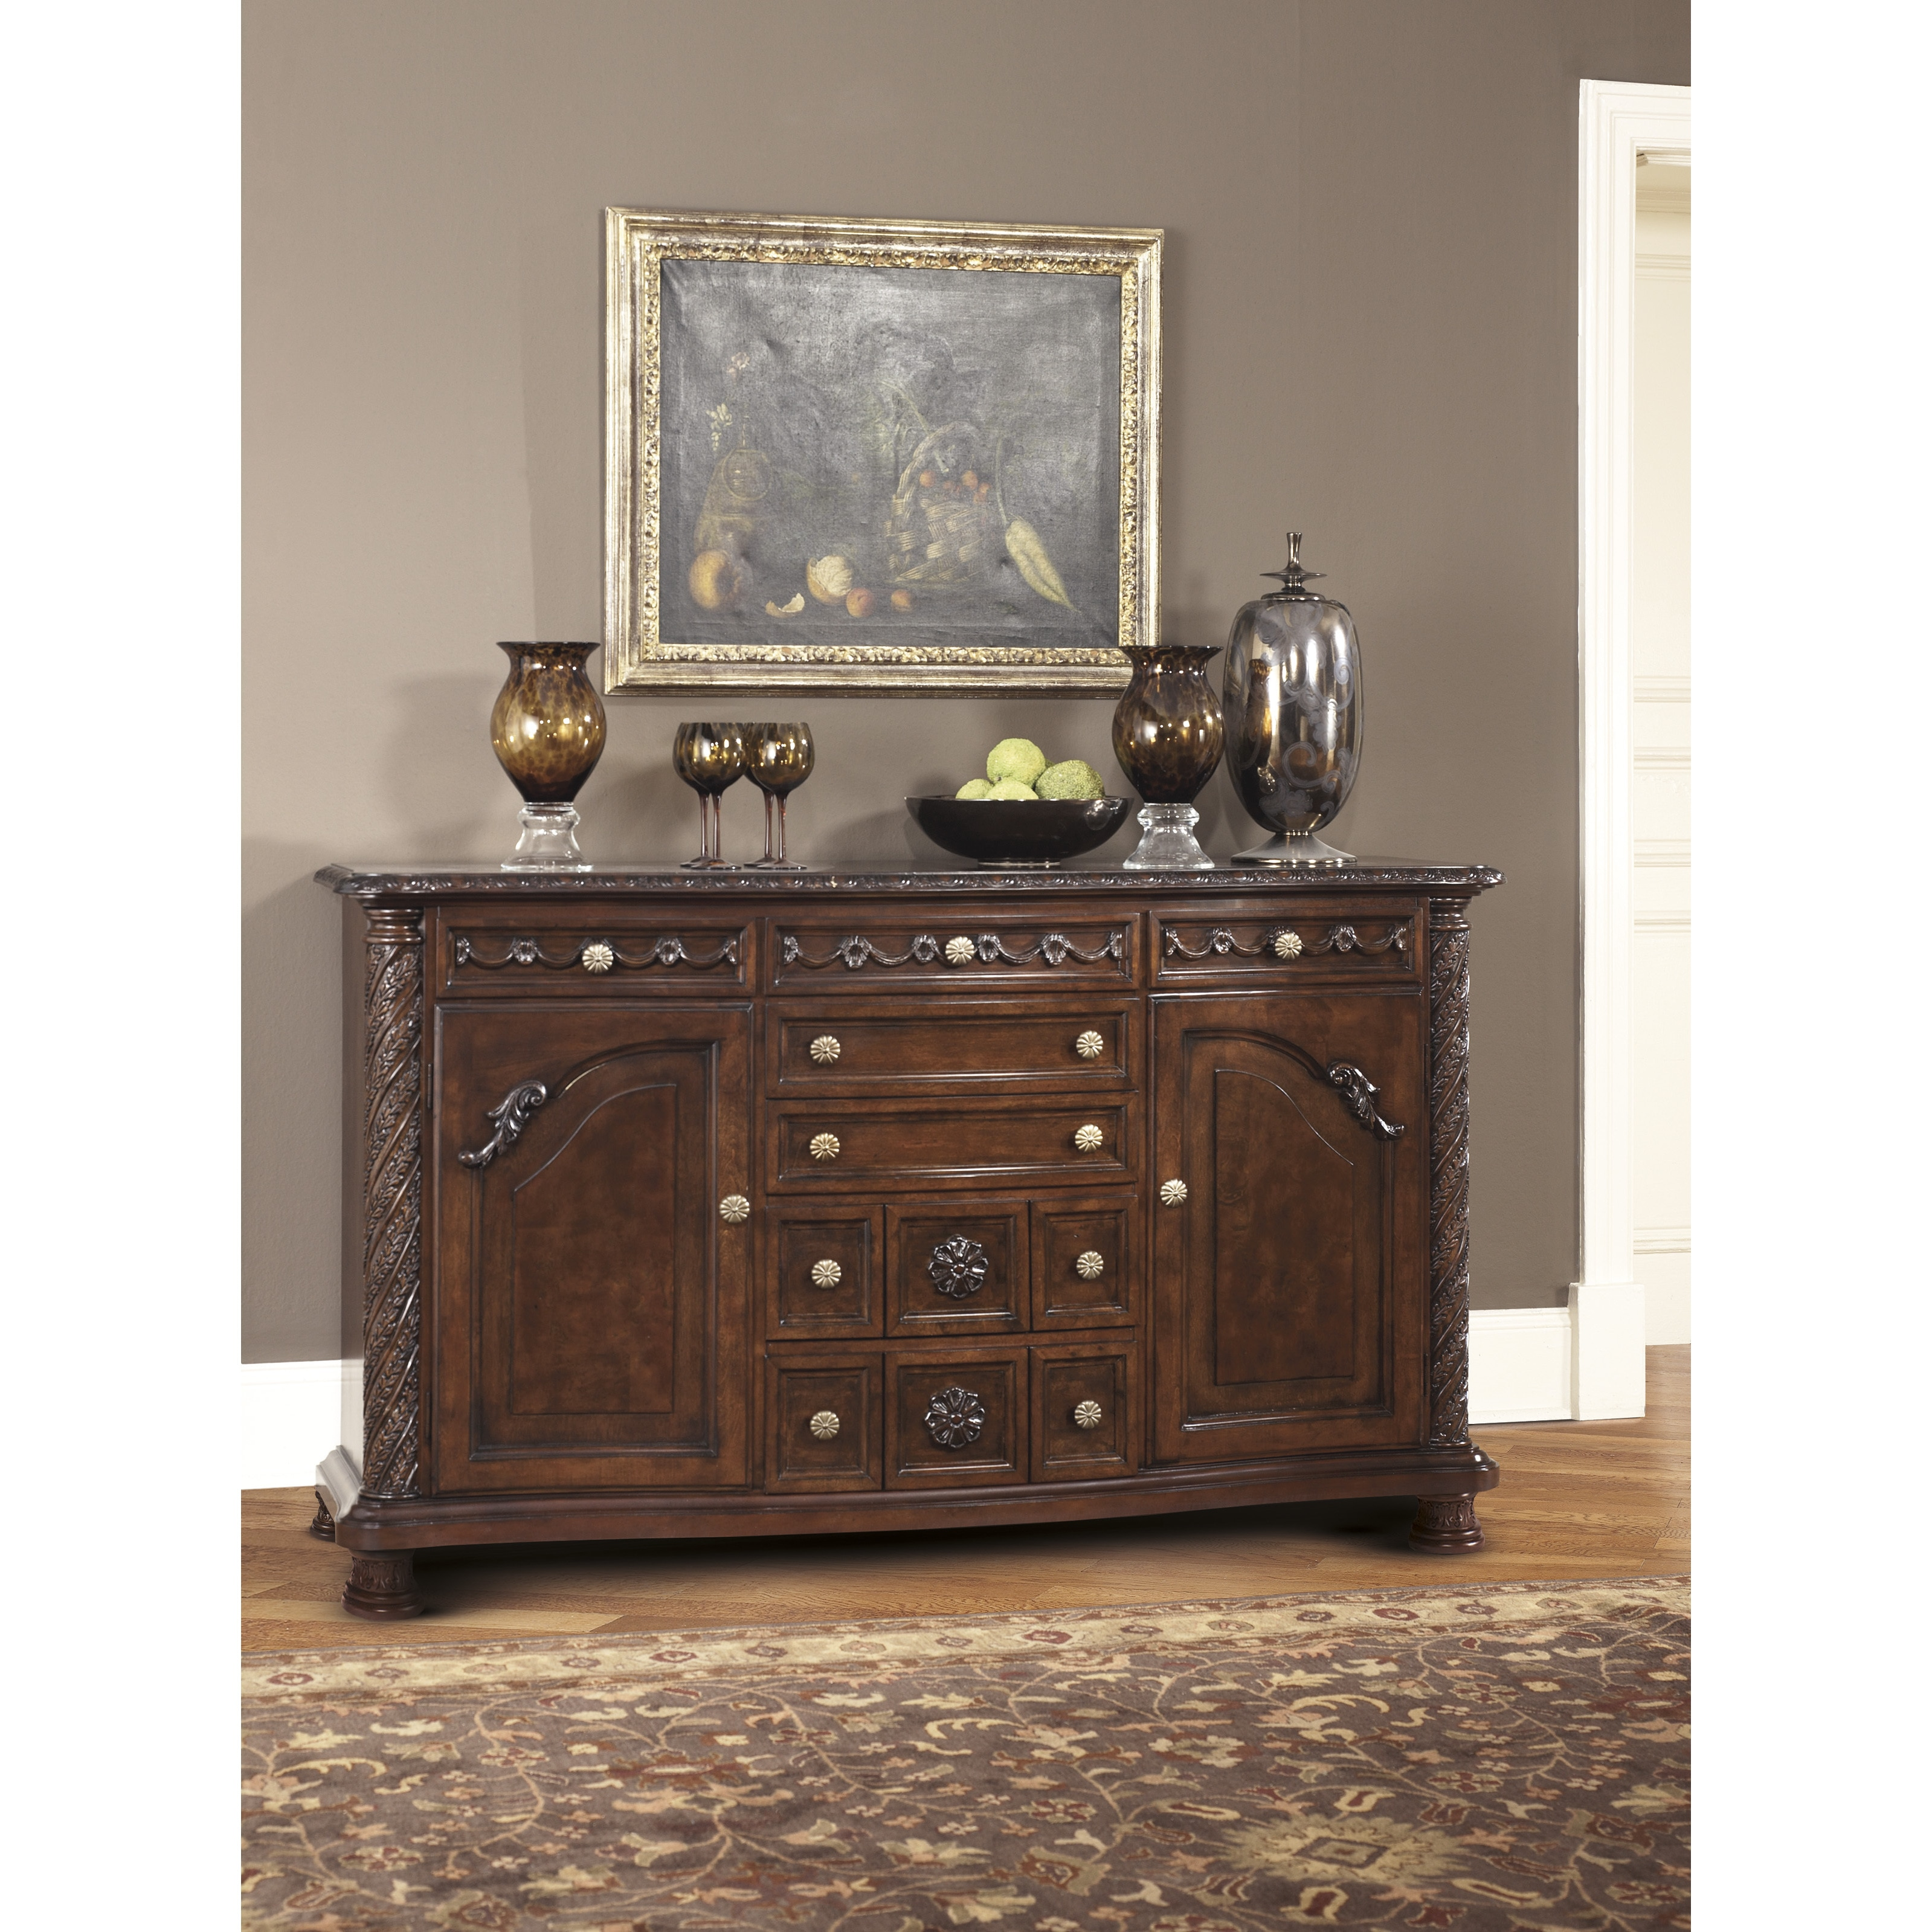 Signature Design By Ashley North Shore Dining Room Server In Dark Brown Finish Overstock 9038962